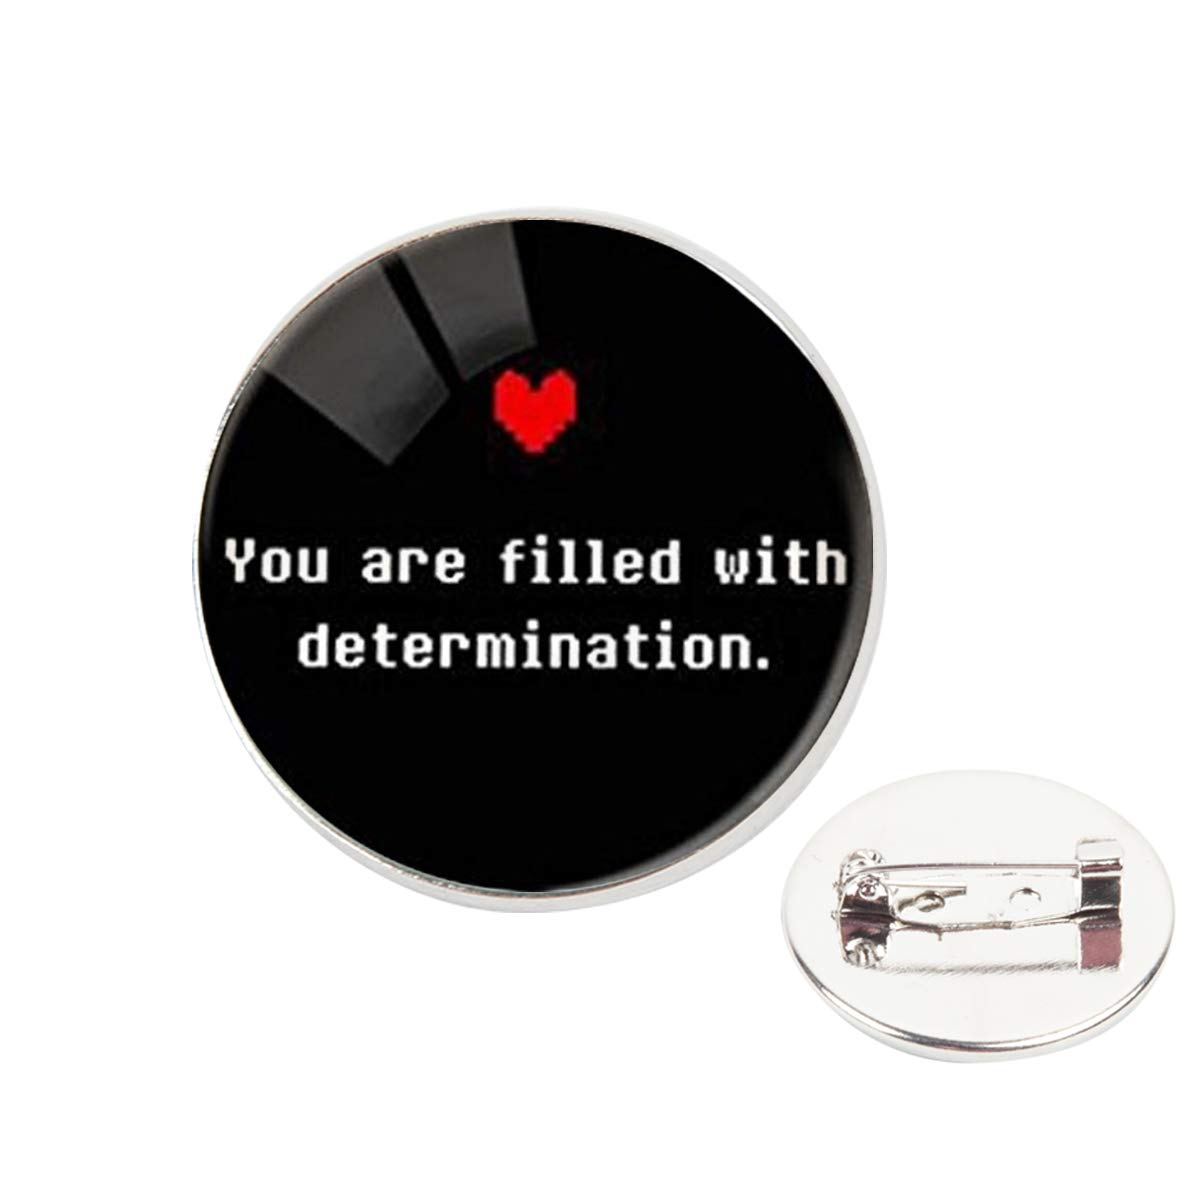 Pinback Buttons Badges Pins Quot Just Be Who You are Colorfu Heart Lapel Pin Brooch Clip Trendy Accessory Jacket T-Shirt Bag Hat Shoe